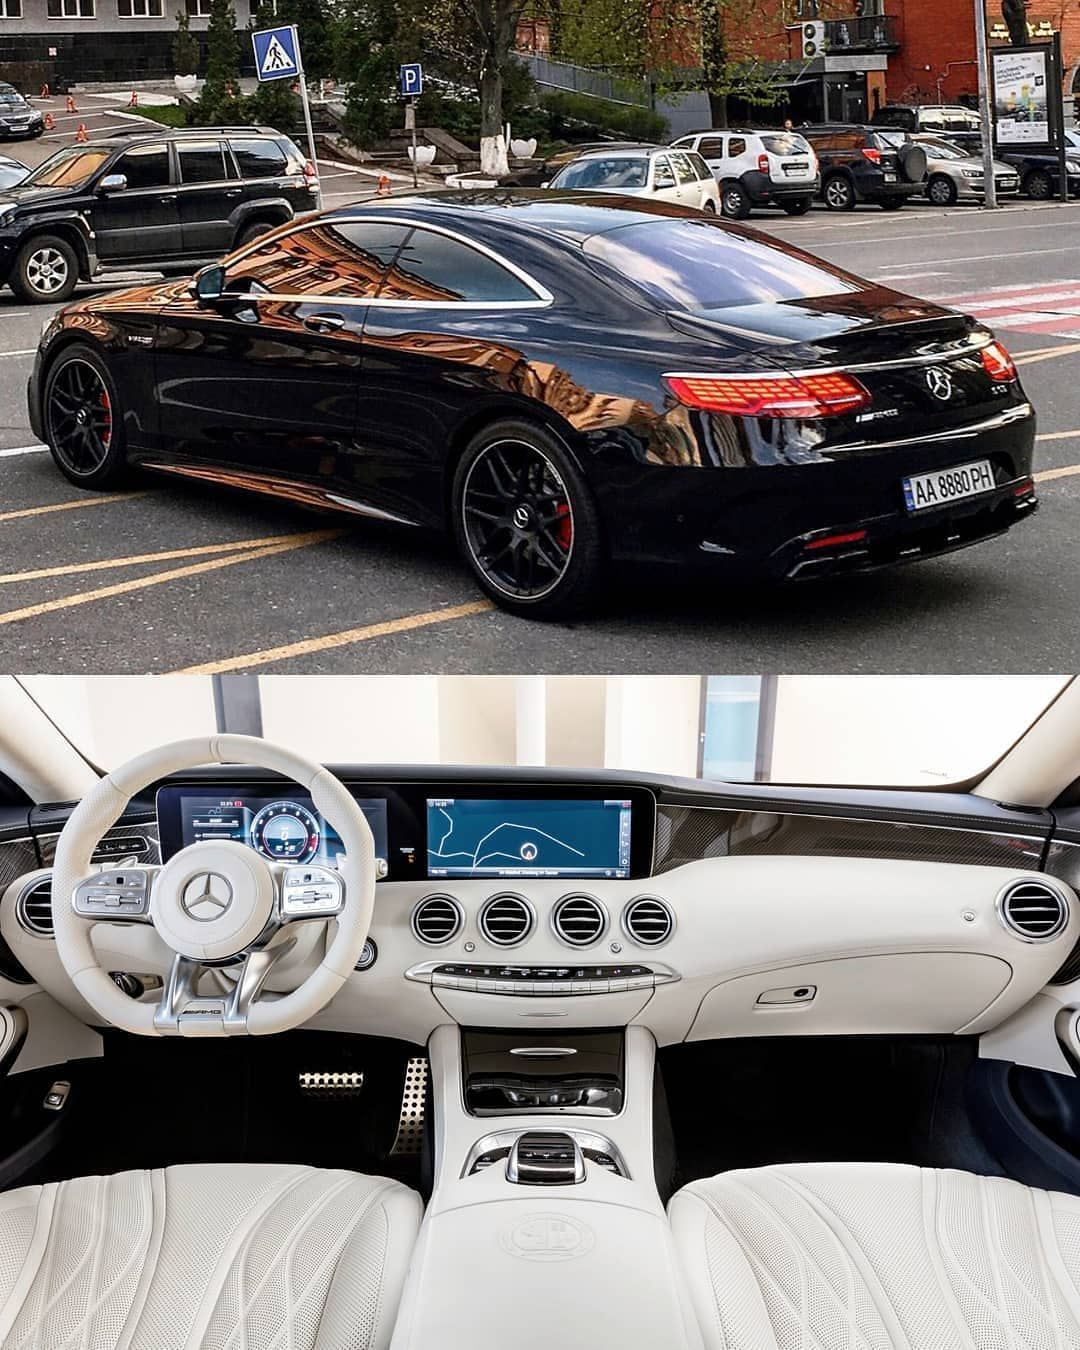 Mercedes Benz S63 Amg Coupe 2019 Follow Uber Luxury For More